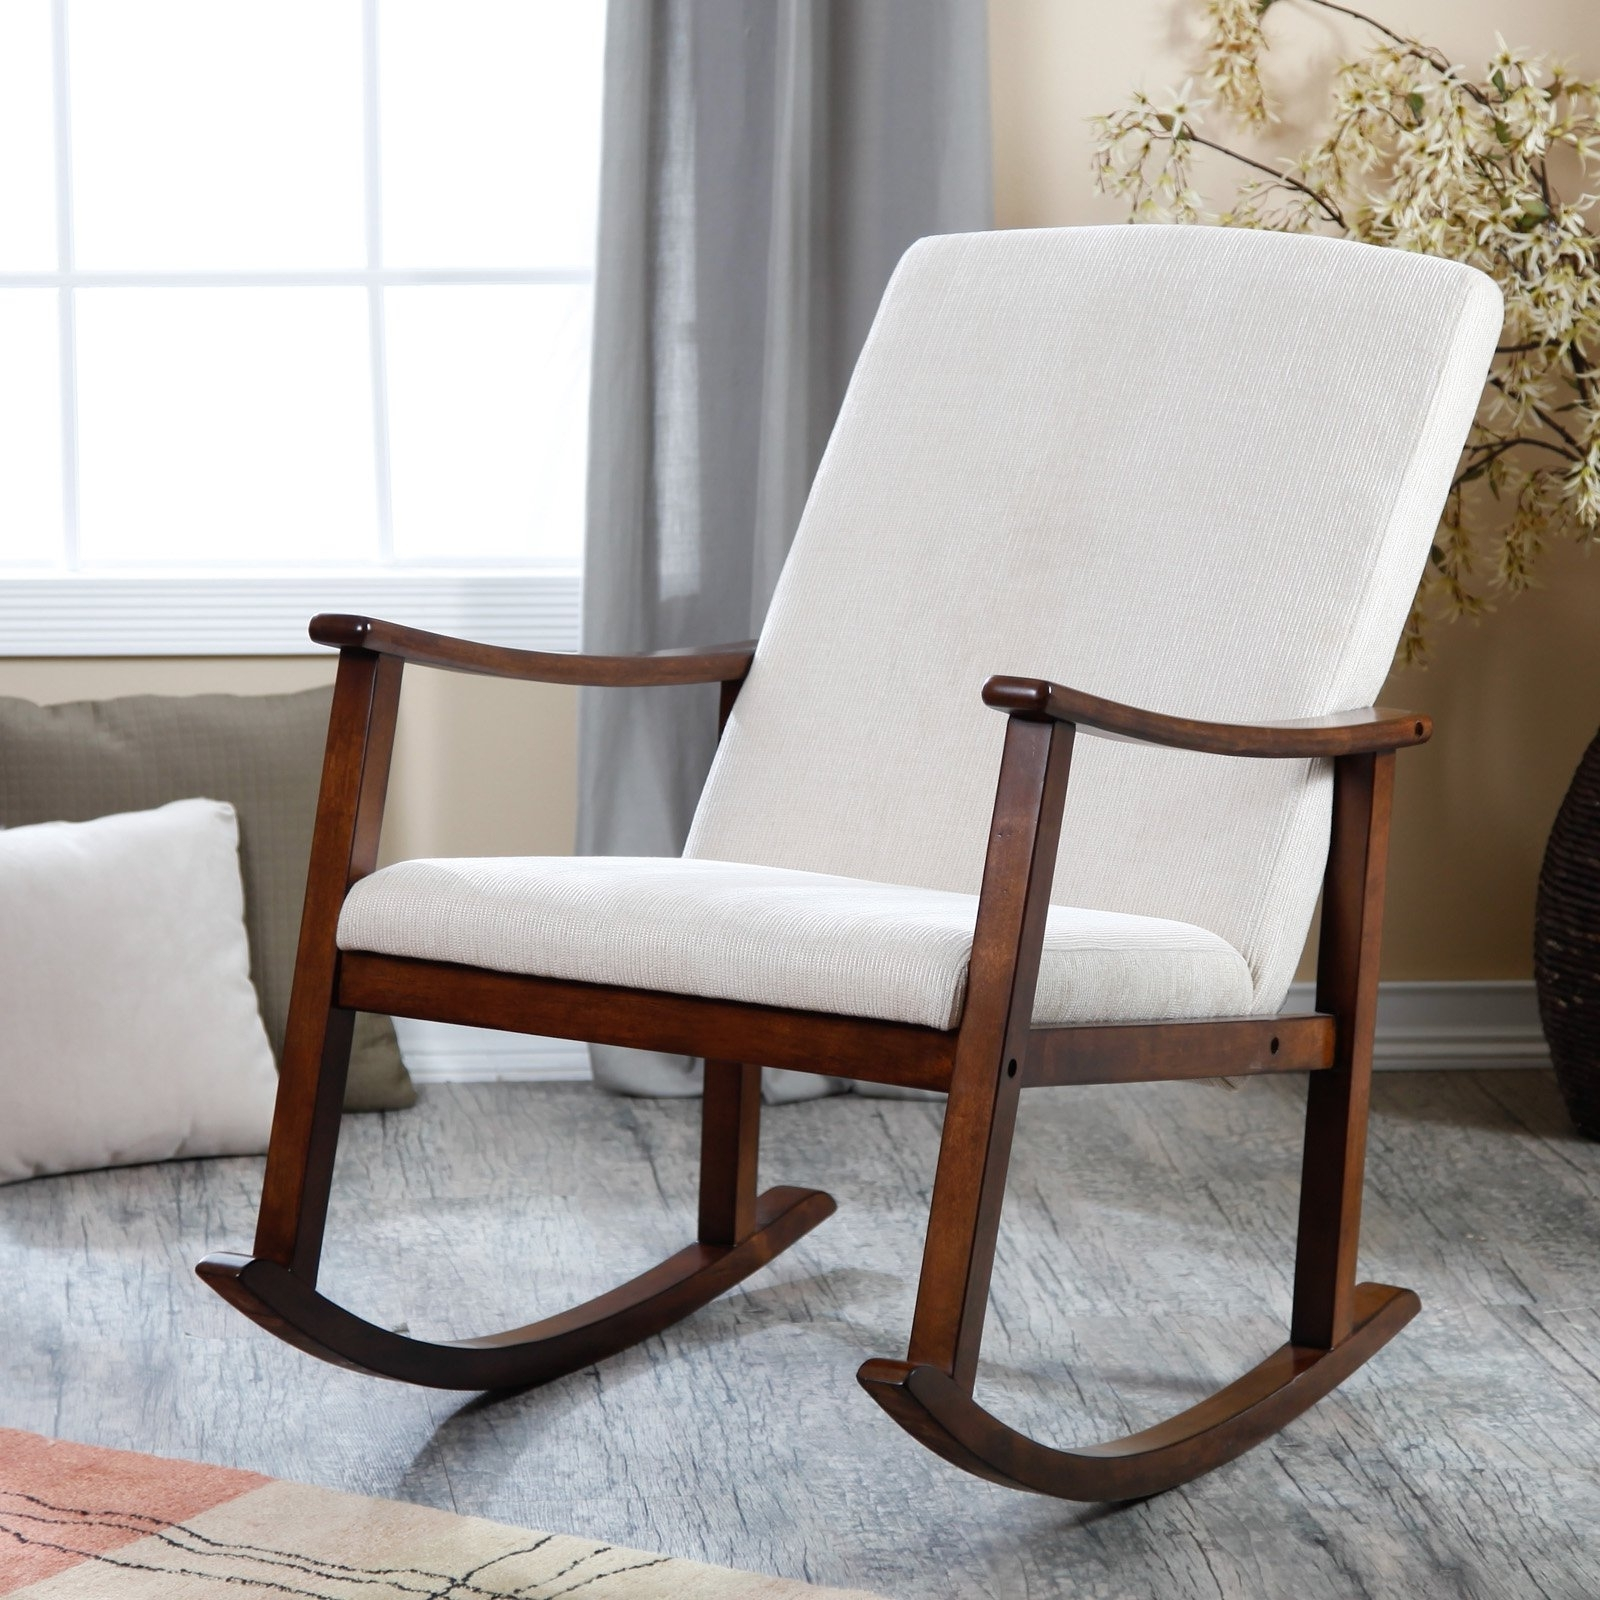 Living Room Furniture : Rocking Chairs For Baby Nursery Wooden Intended For Most Recent Rocking Chairs For Nursing (View 9 of 15)